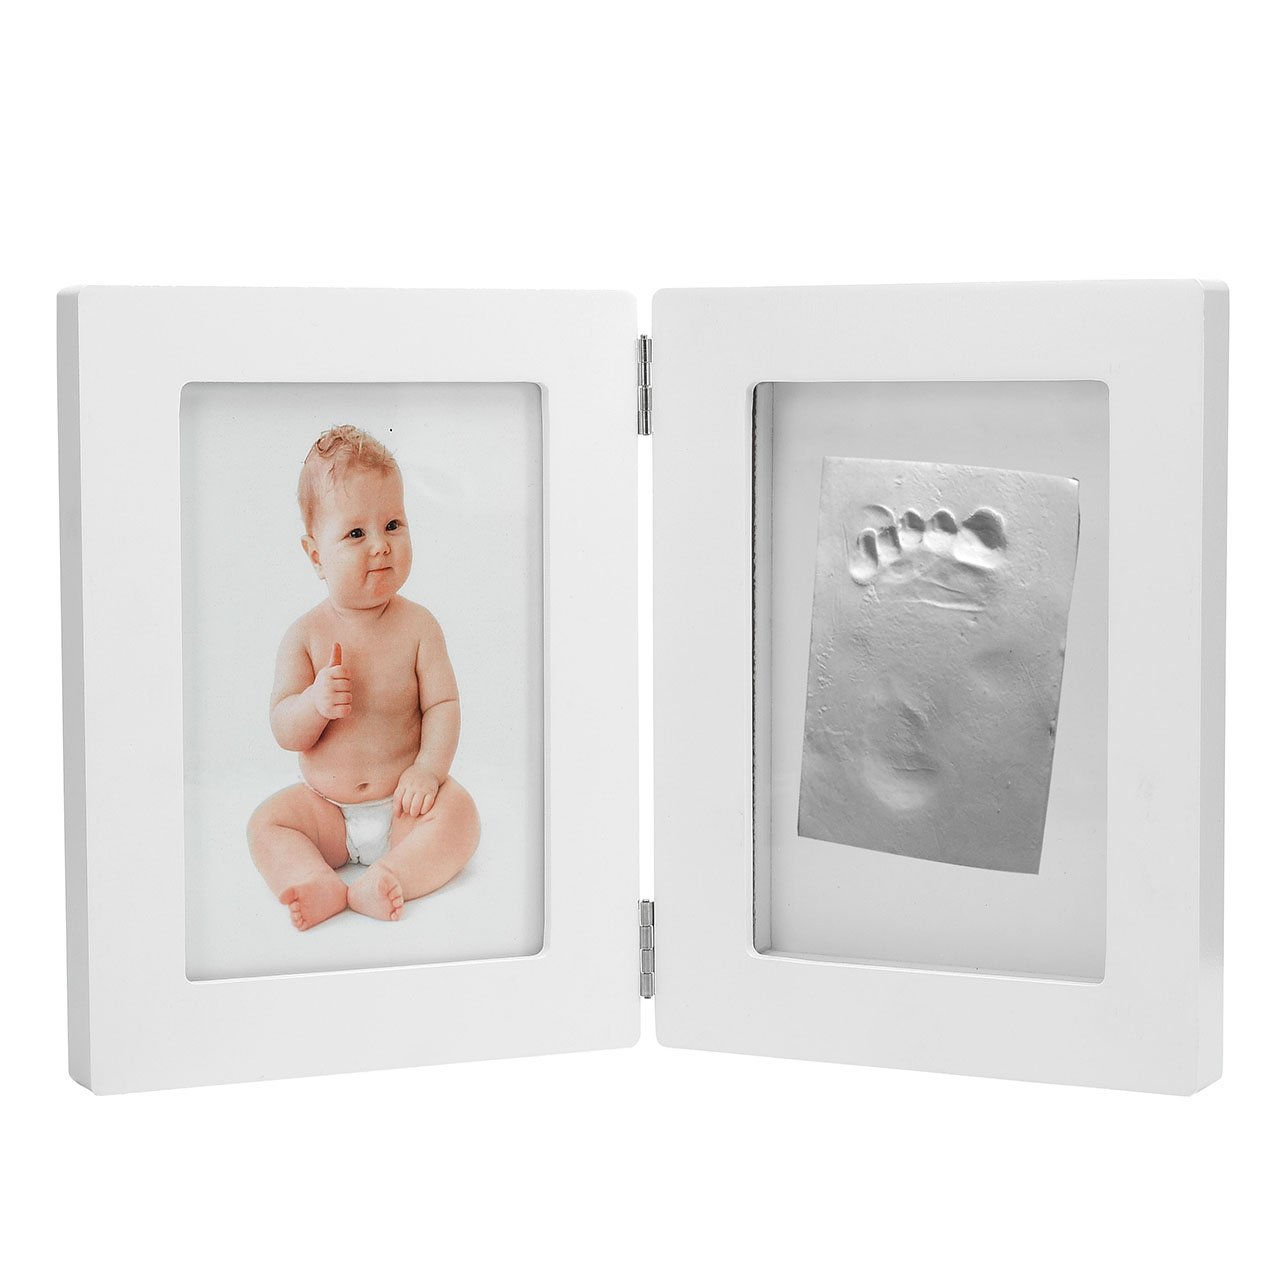 CozyCabin BABY HAND or FOOTPRINT PICTURE FRAME KIT, Cool & Unique Baby Shower Gifts for Registry, Memorable Keepsakes Decorations, Premium Clay & Wood Frame by CozyCabin